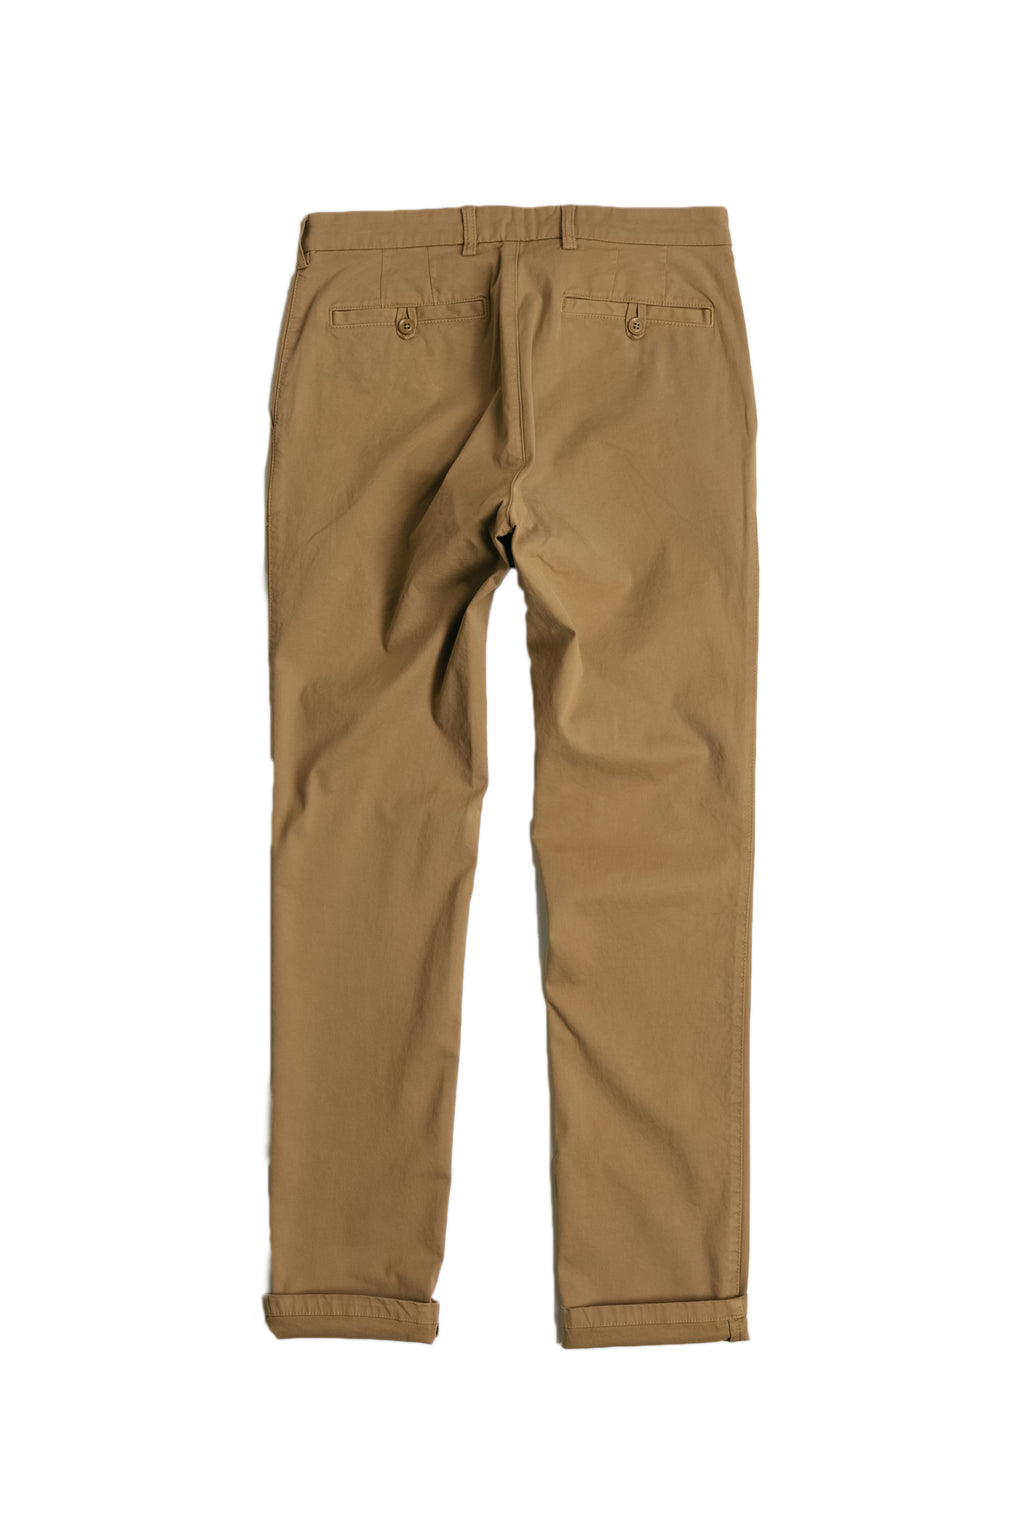 Stretch Chino in Camel Front